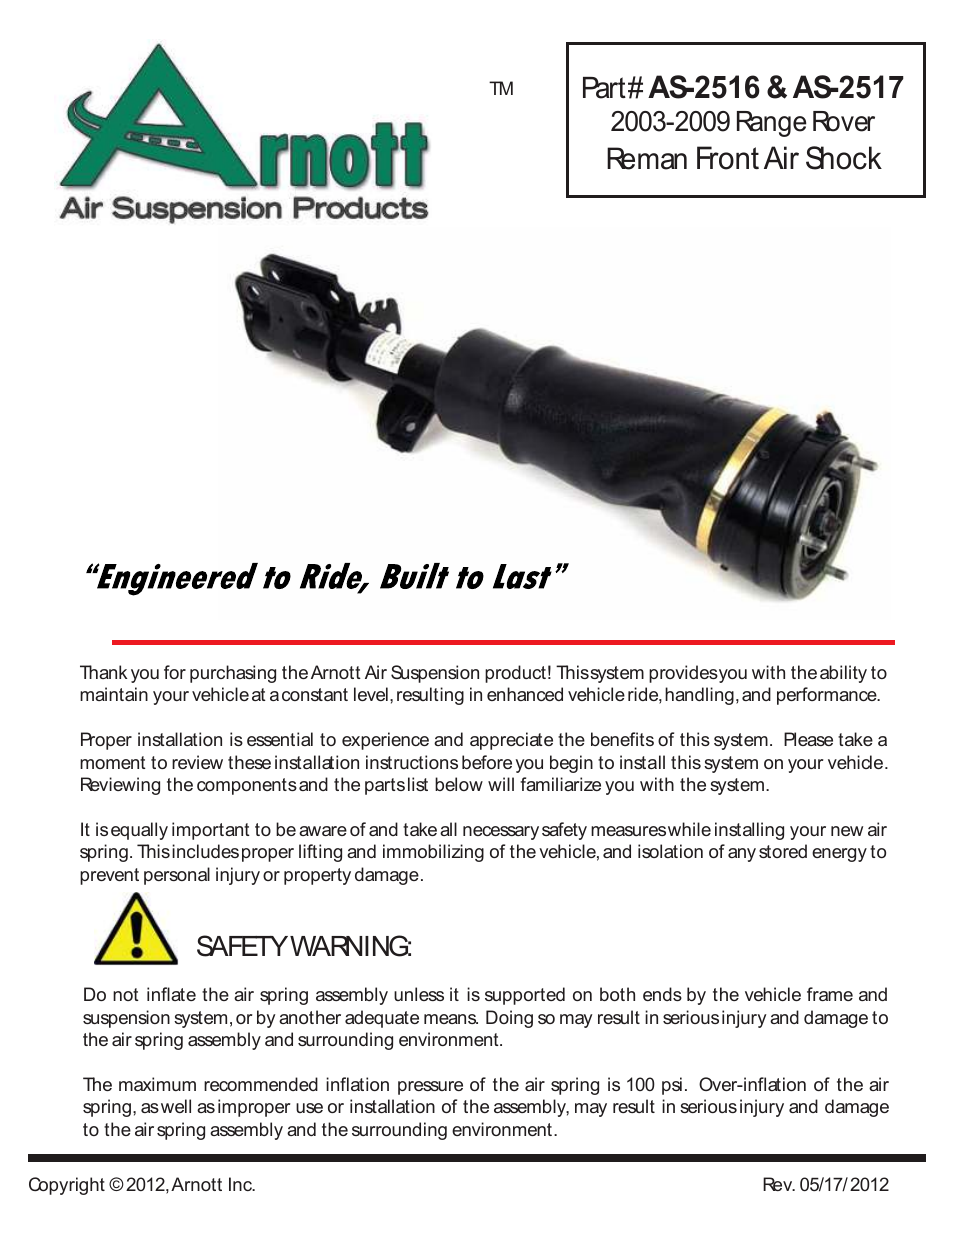 Air Suspension AS-2516 User Manual | 4 pages